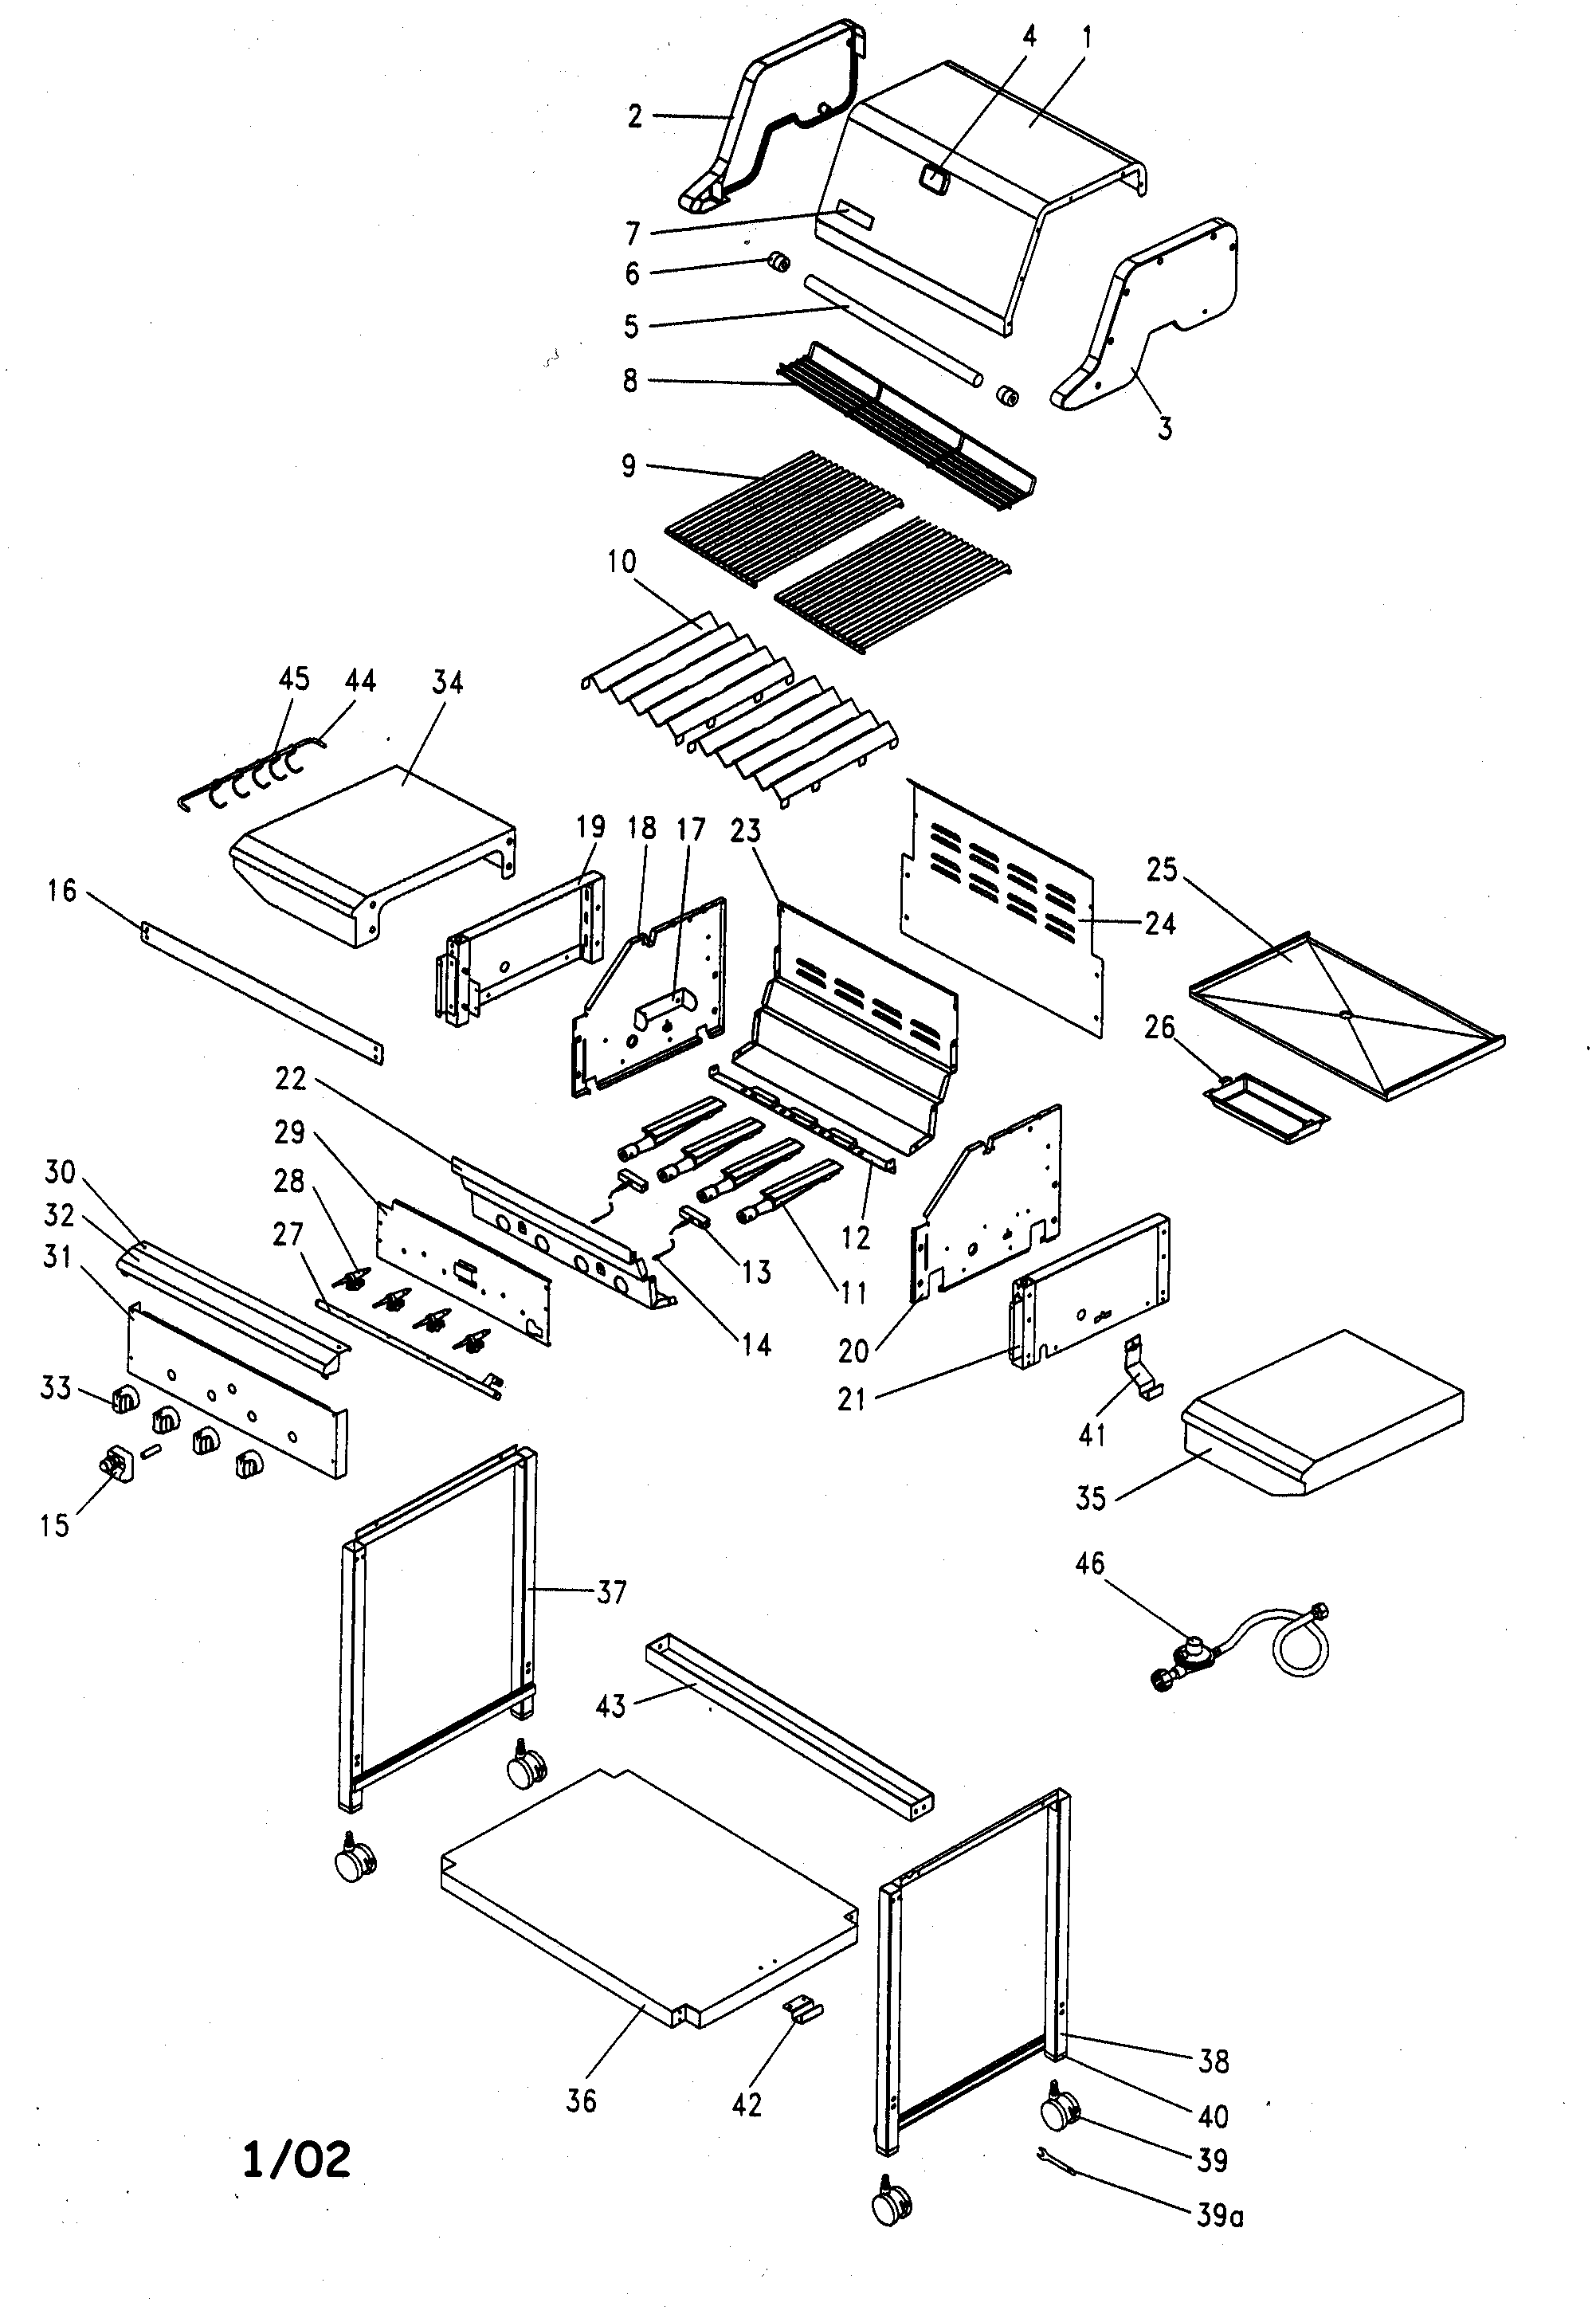 GRILL Diagram & Parts List for Model 141155401 Kenmore